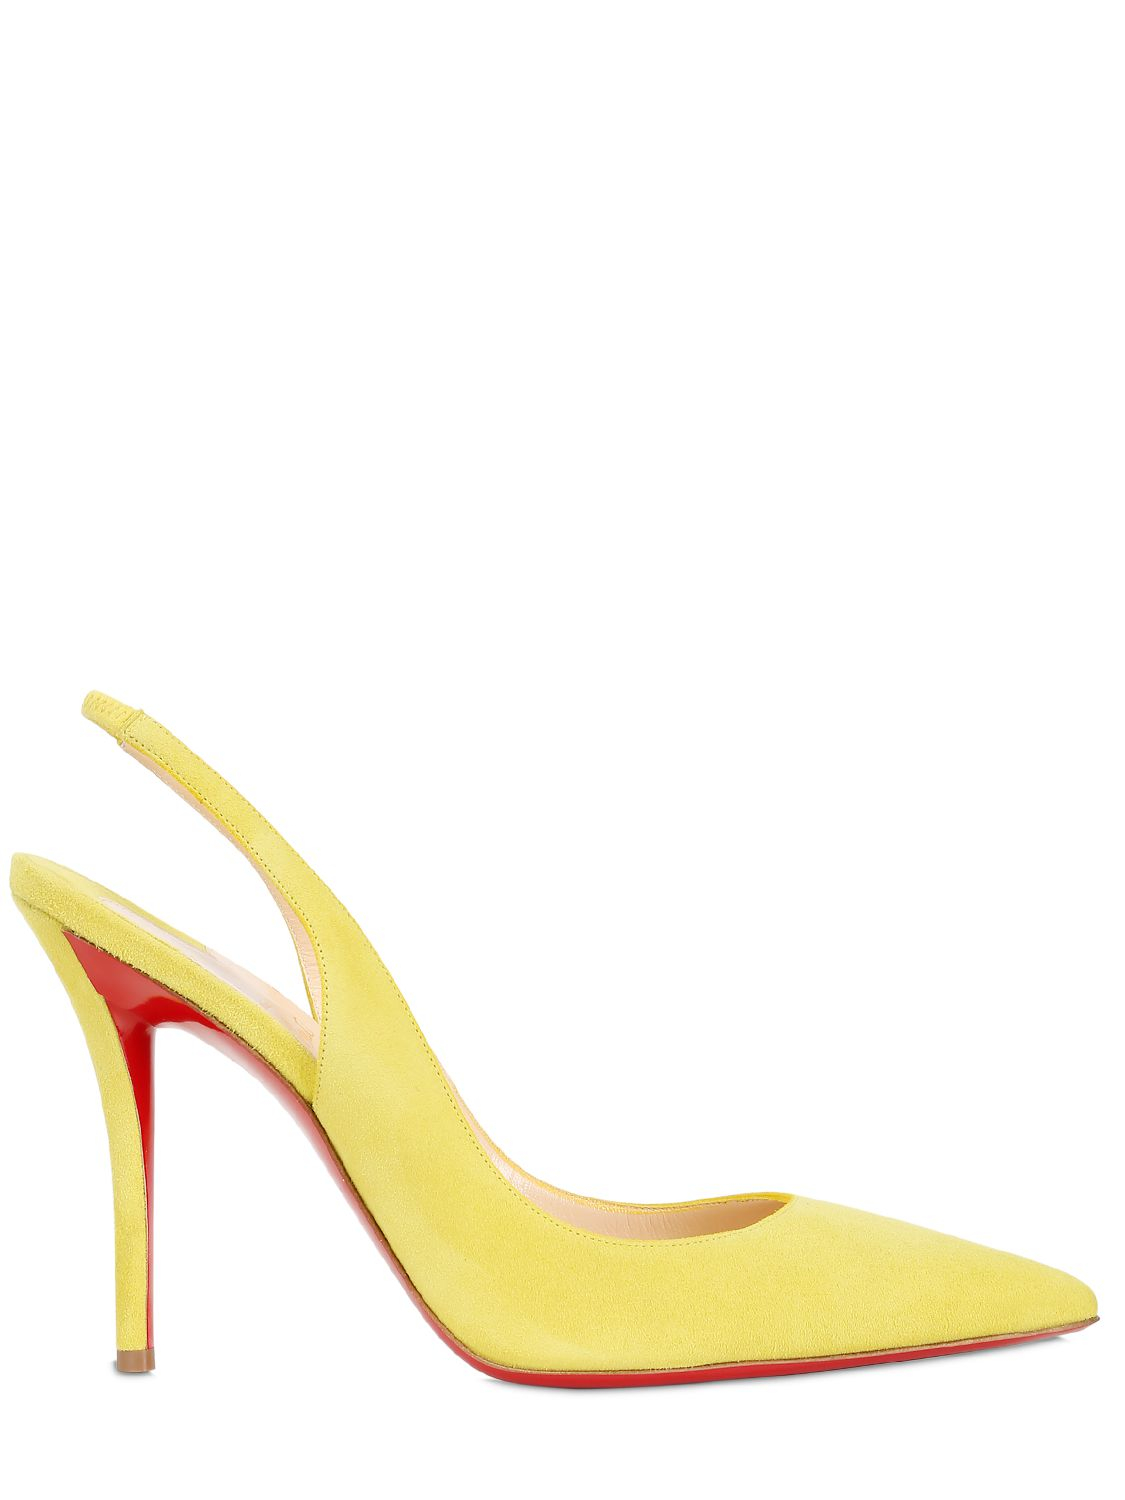 christian louboutin men shoes - christian louboutin leather plexi wedge slingback pumps - Bavilon ...